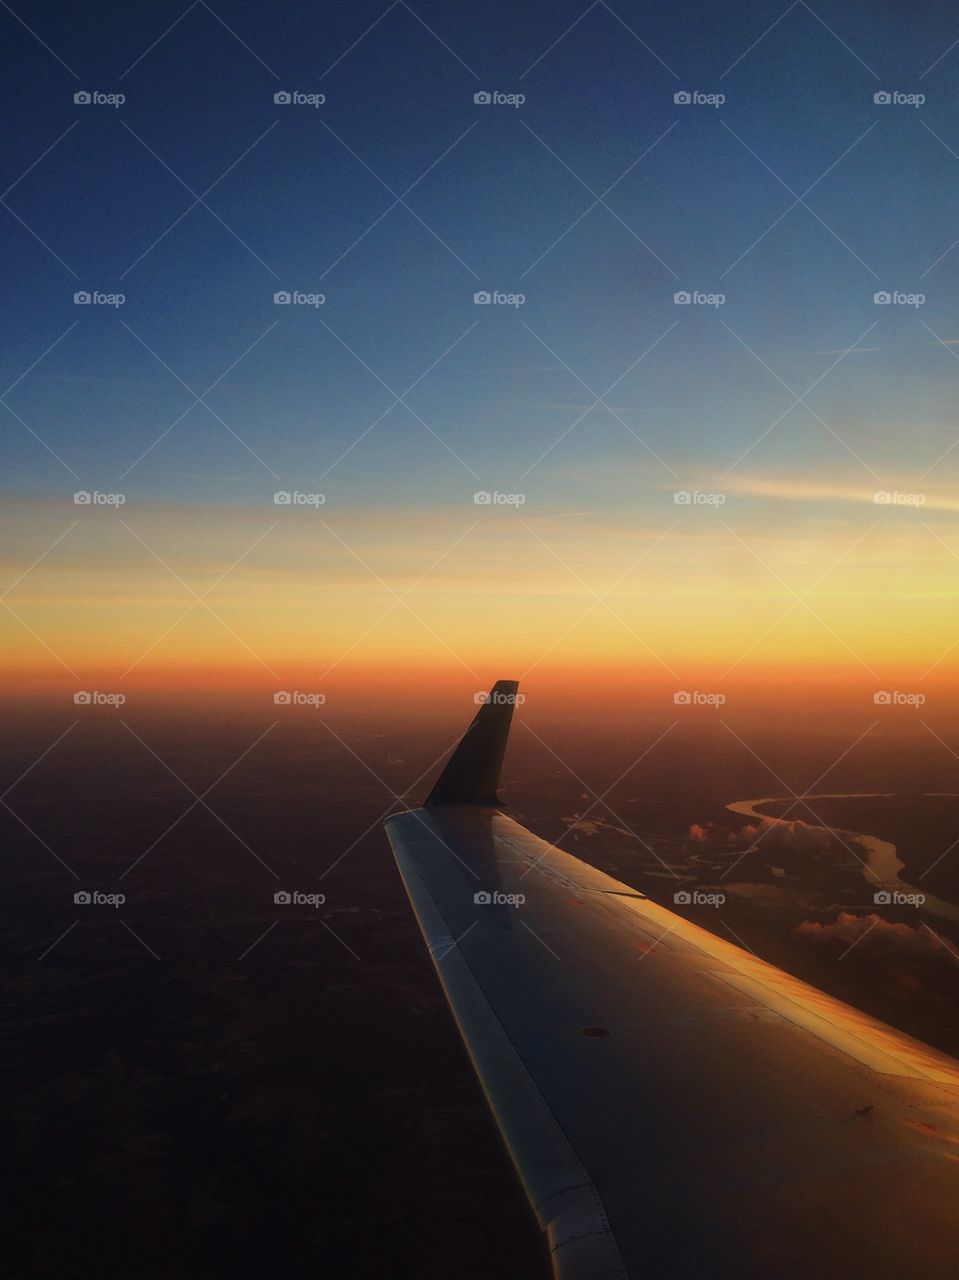 Airplane wing with sunset over Ohio River. Flying into the sunset over the Ohio River Valley